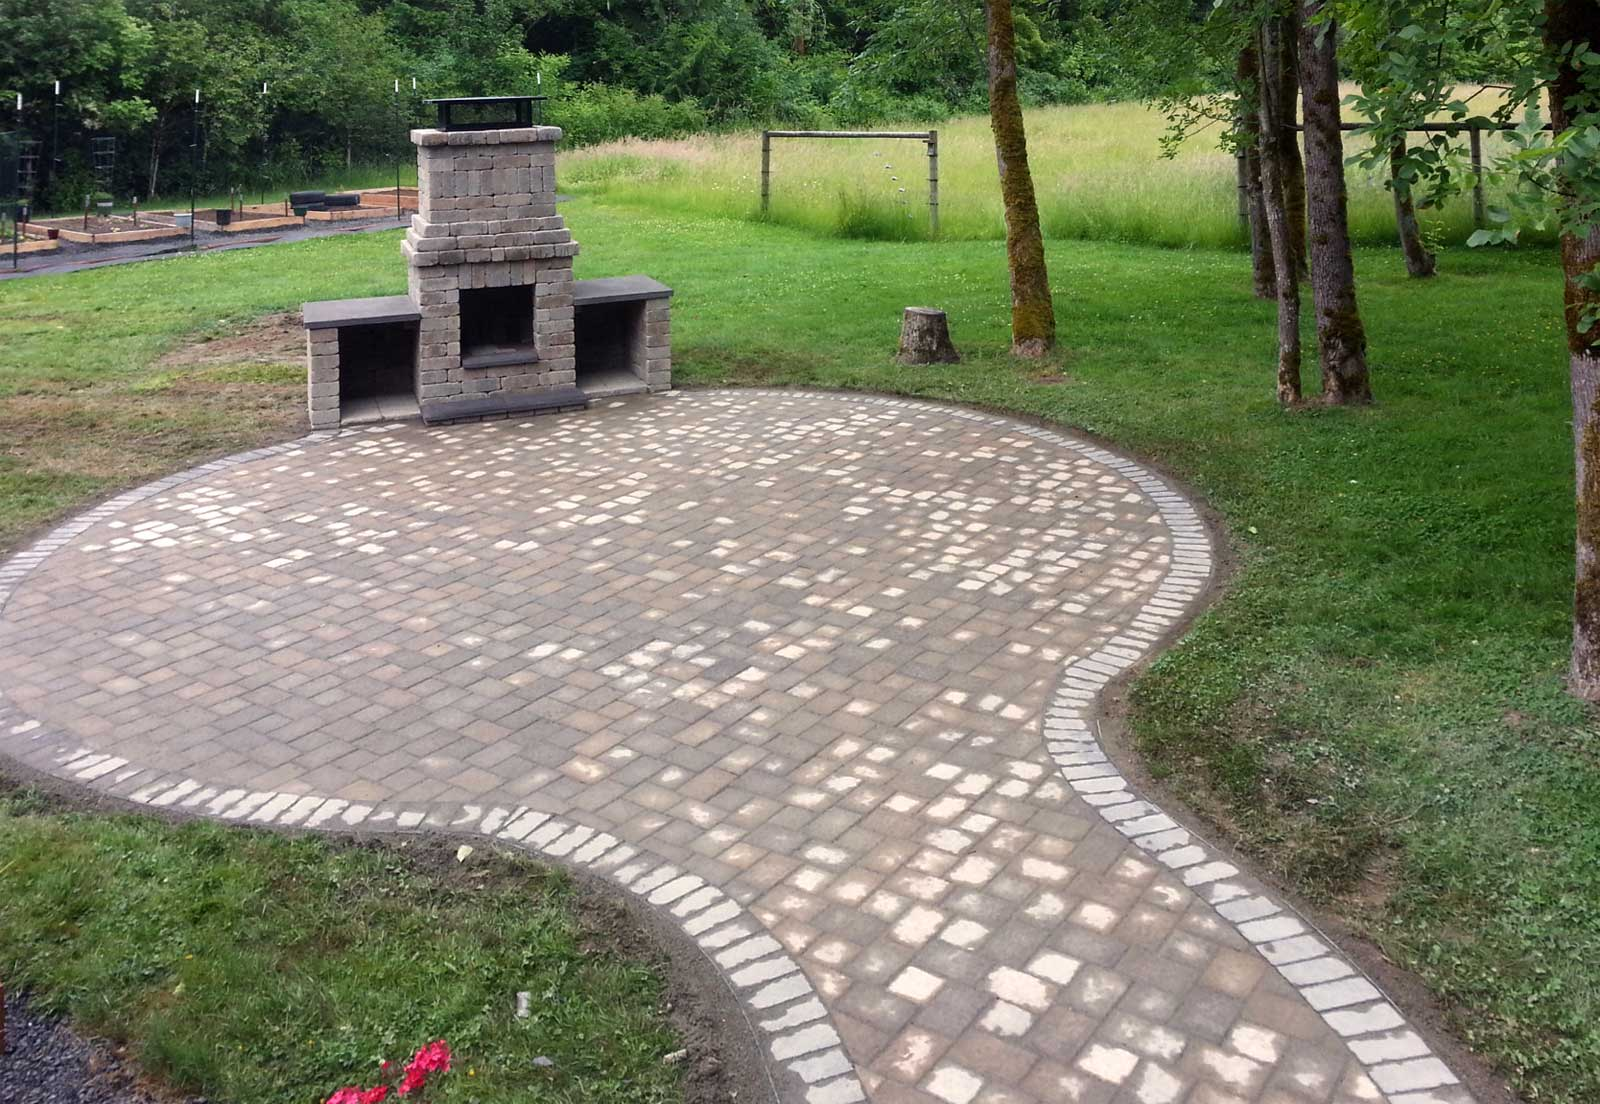 Firepit With Matching Paver Patio And Connecting Pathway.